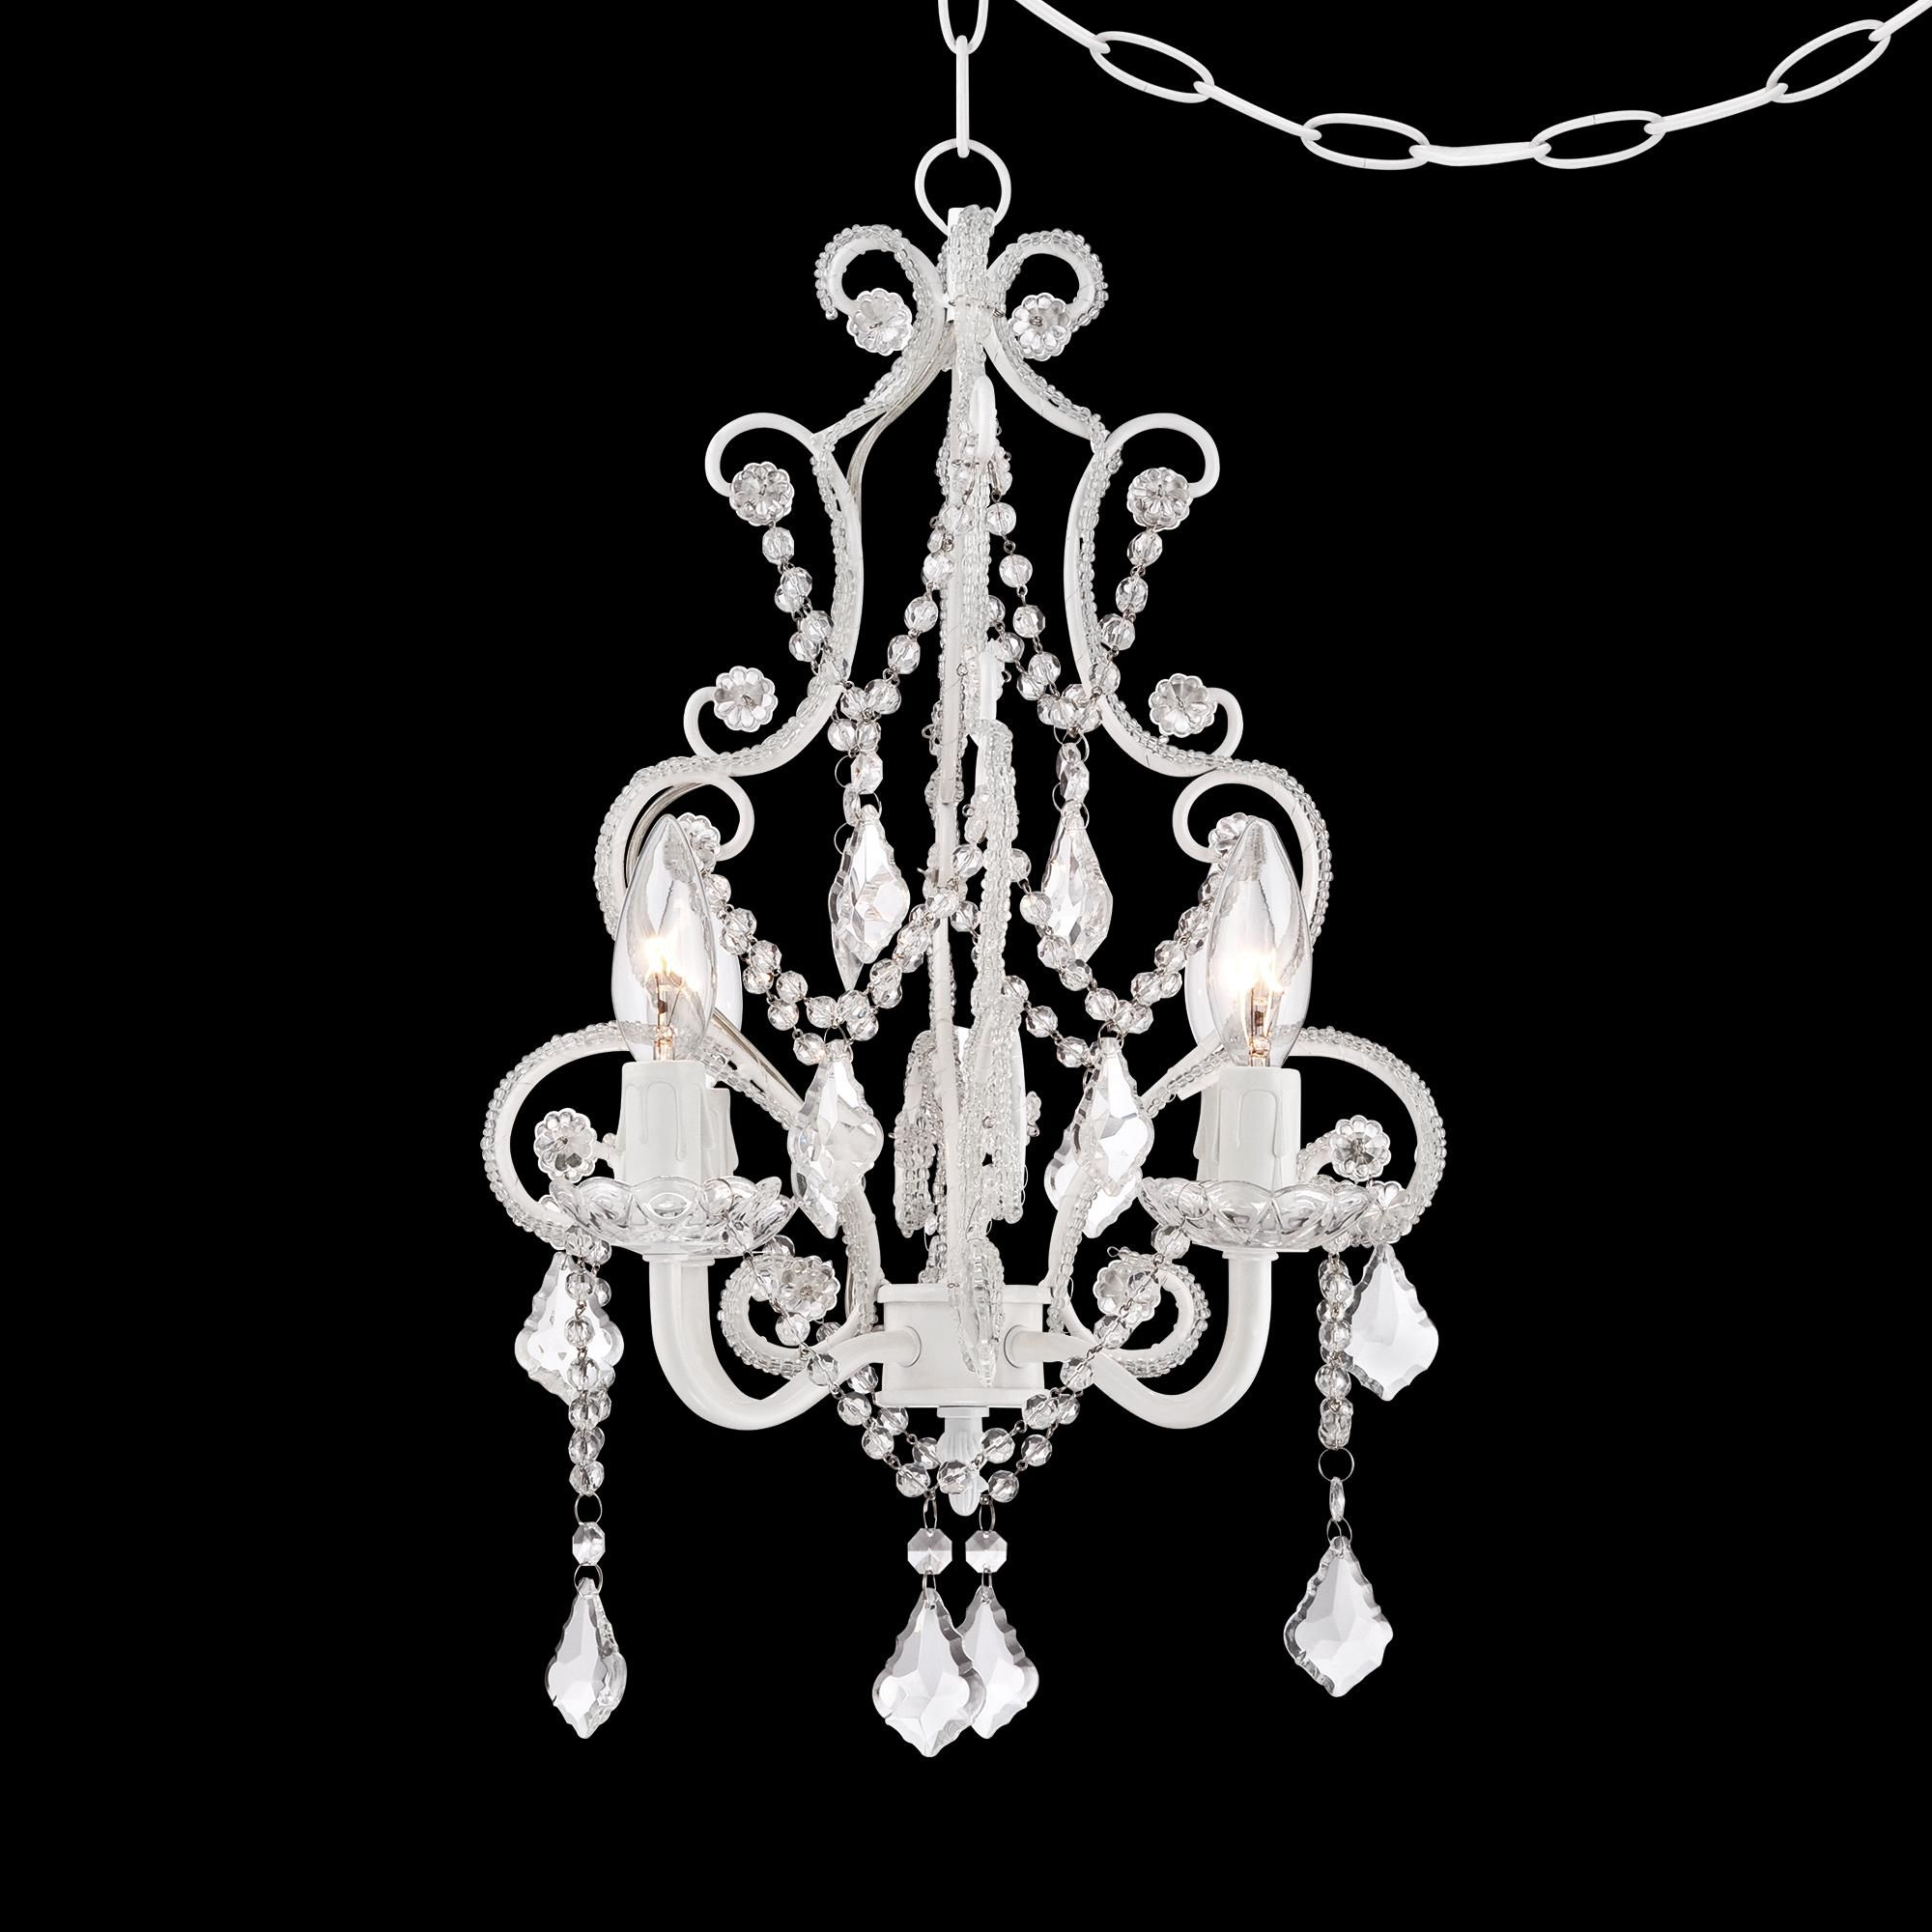 White With Crystal Accents Plug In Swag Chandelier